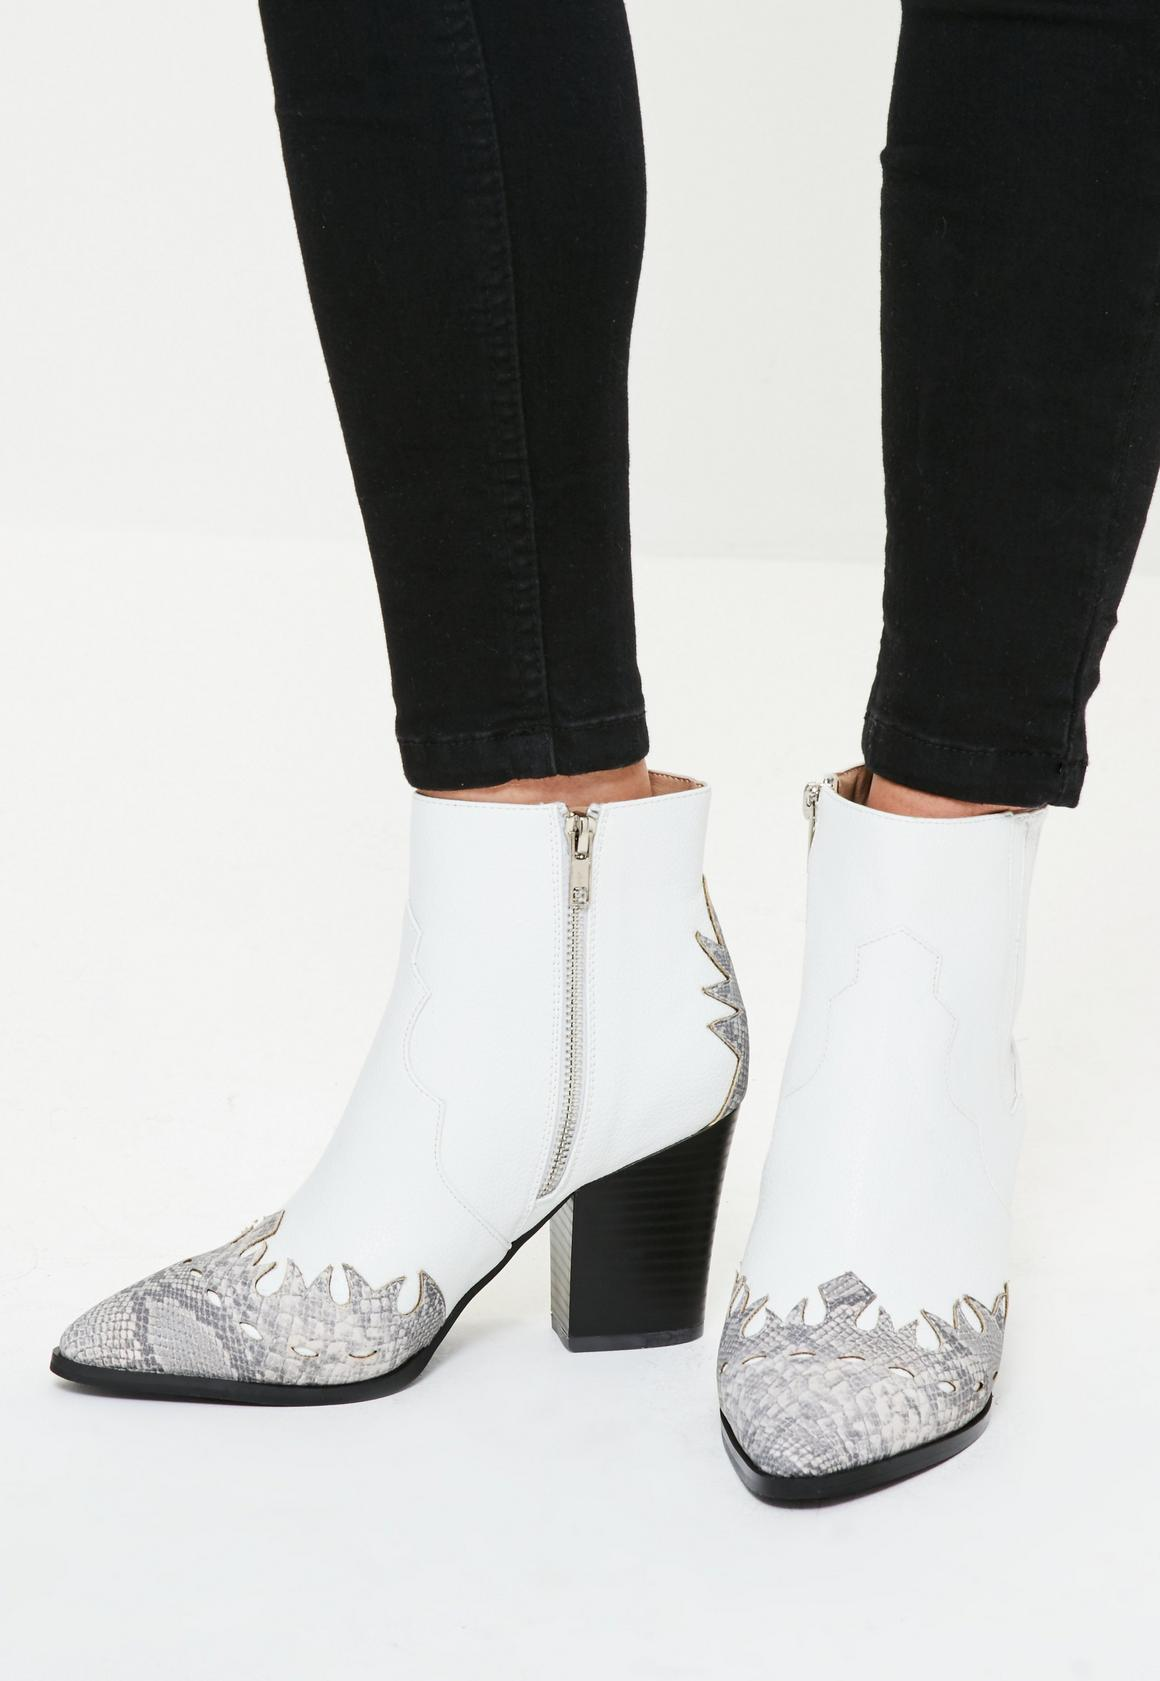 Ankle Boots for Women - Black & Brown | Missguided